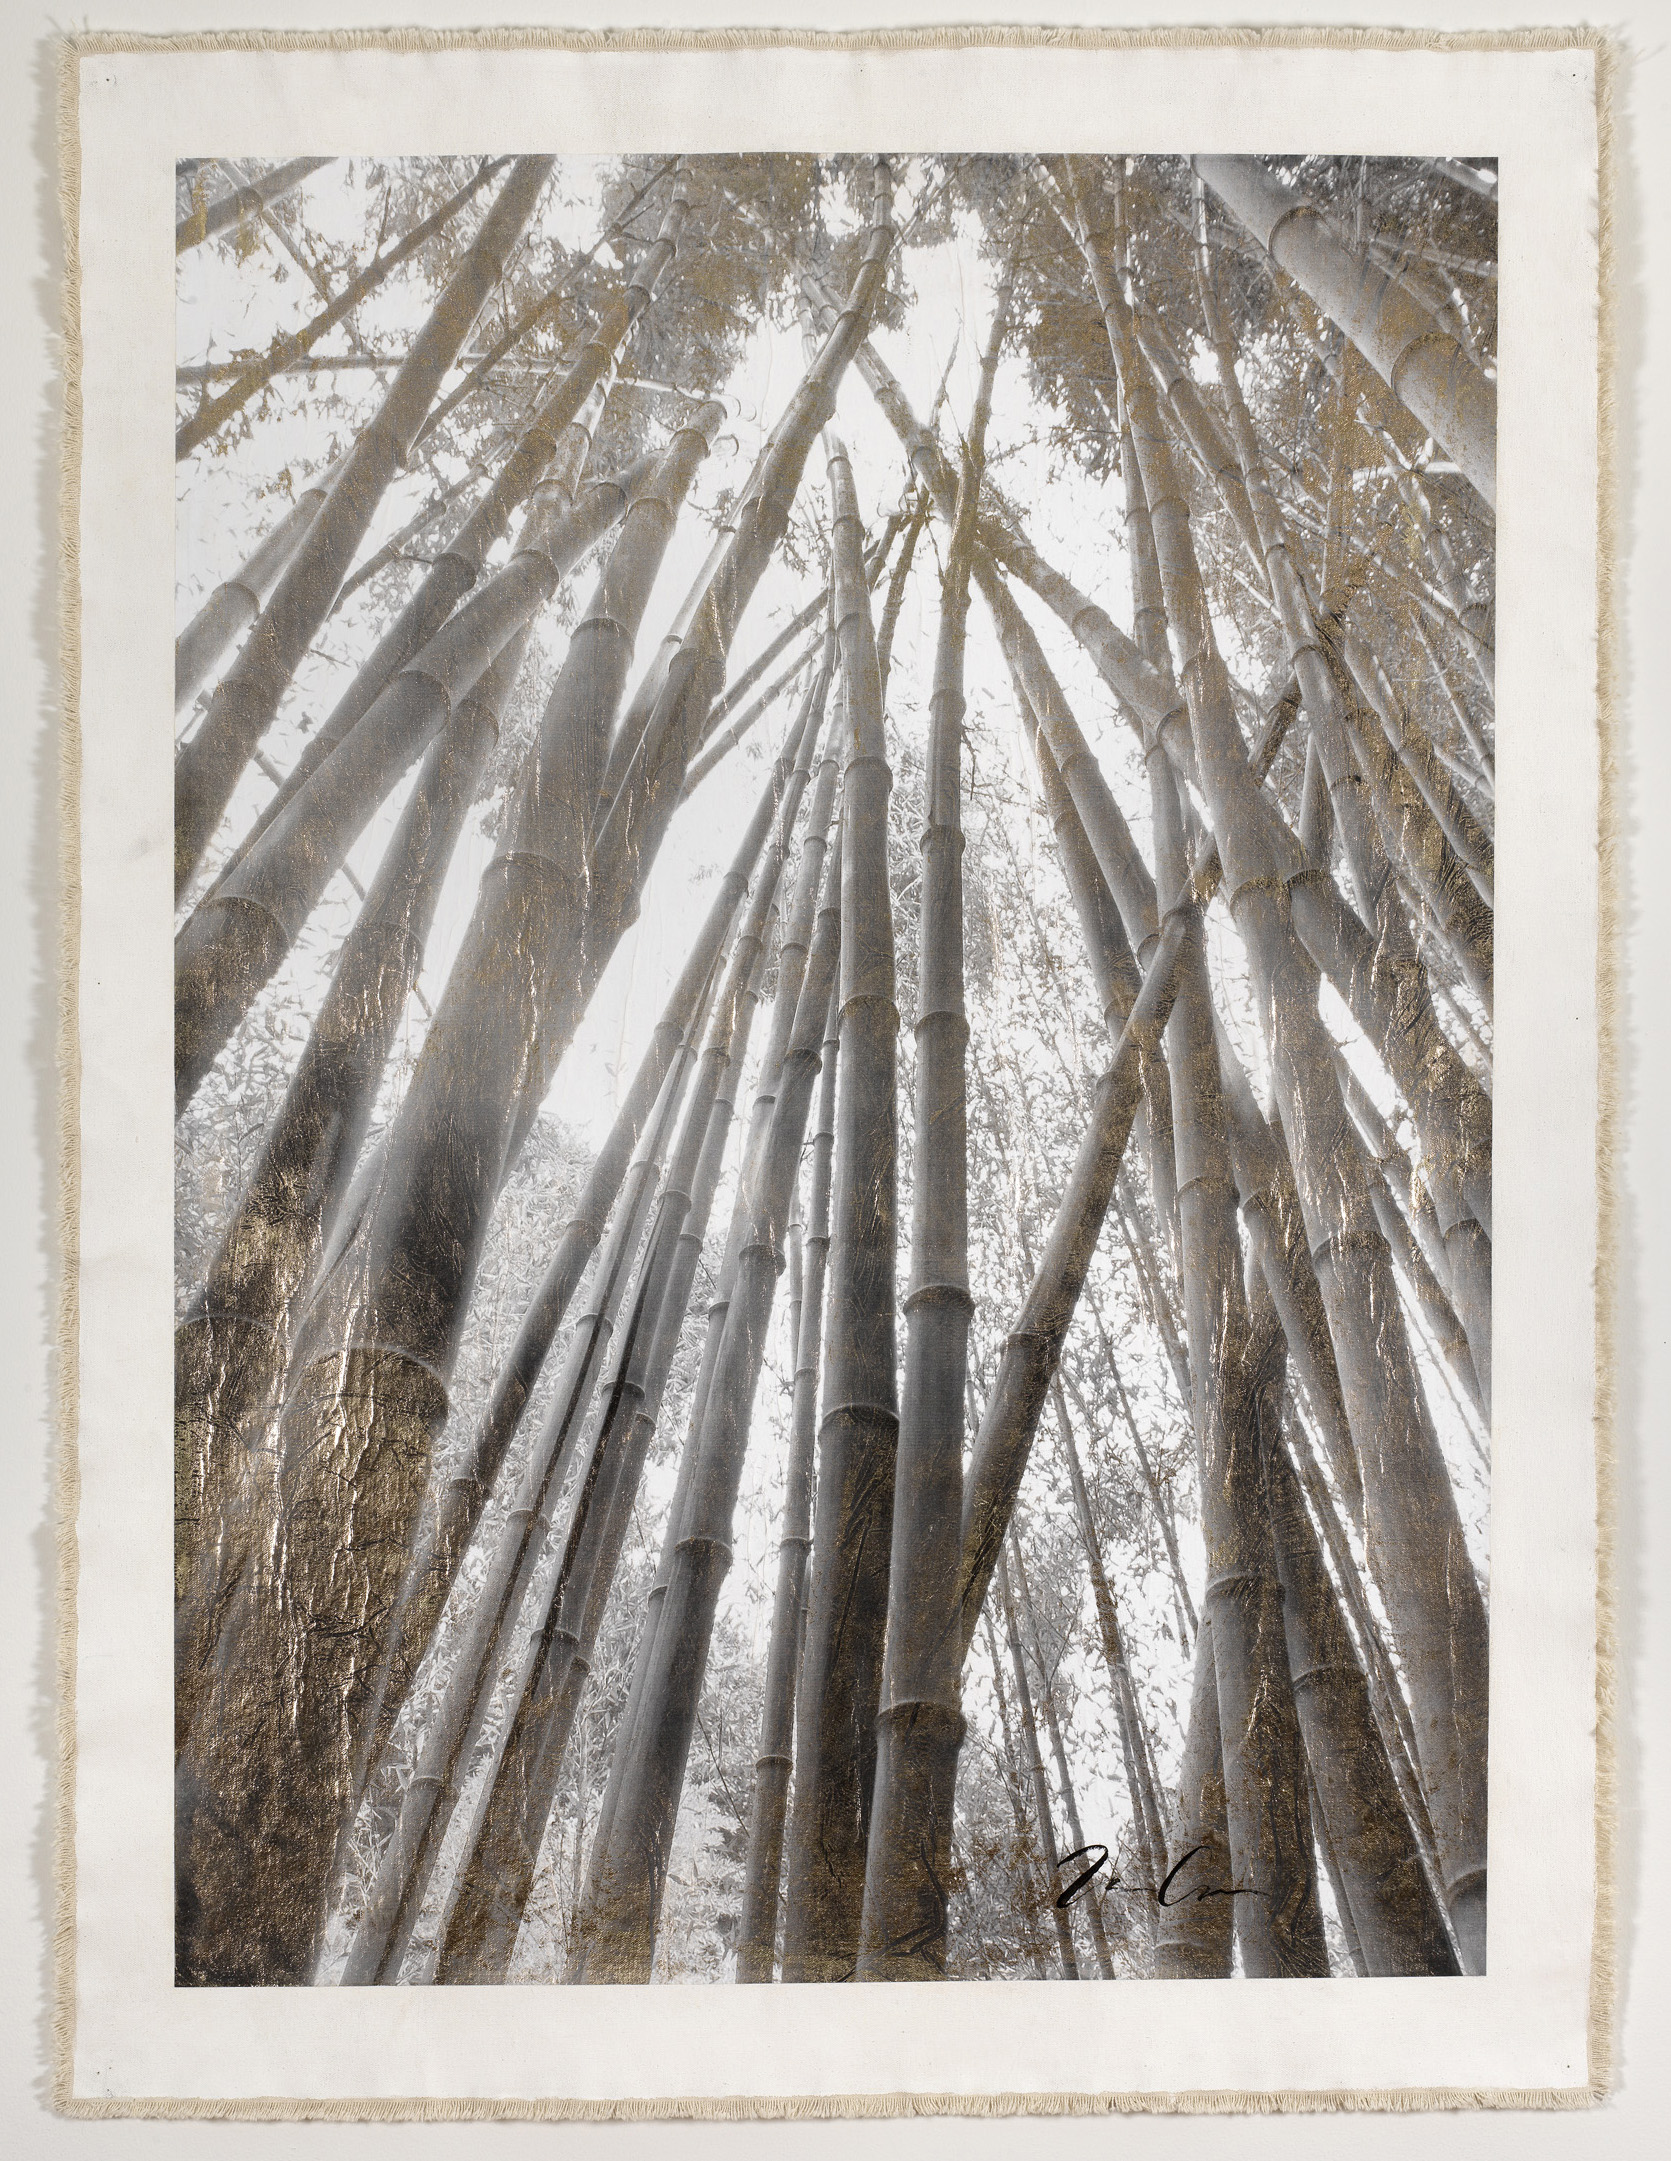 Bamboo Forest Canopy